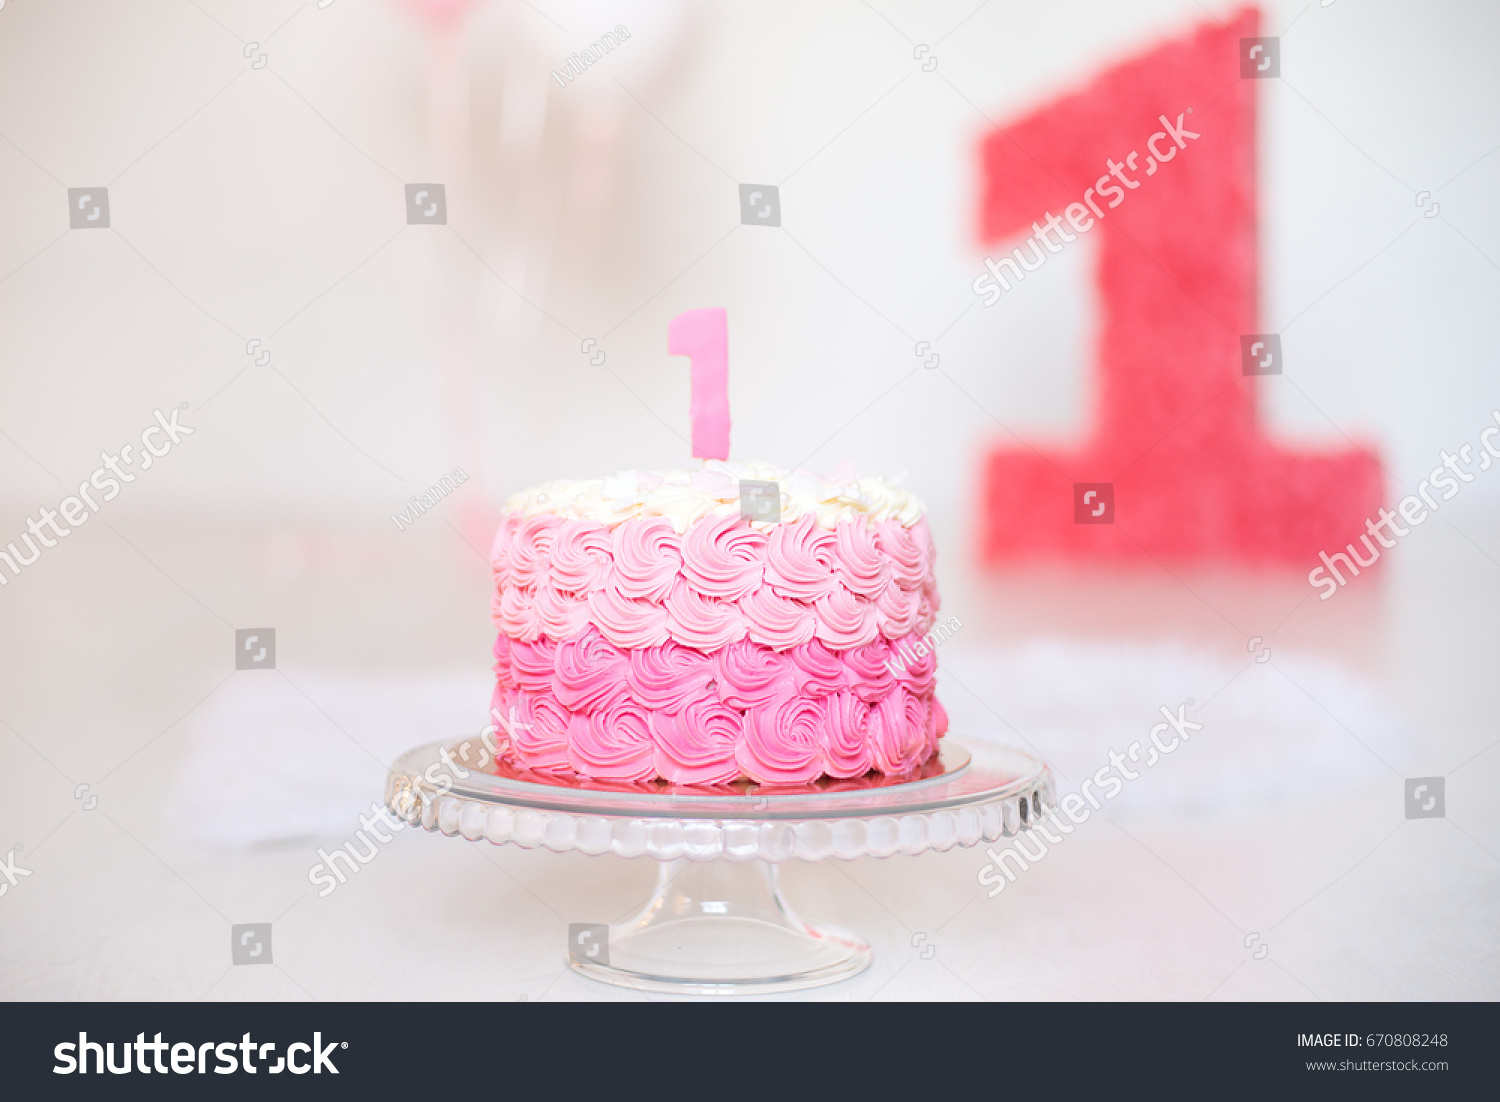 First Birthday Cake Girl Stock Photo Edit Now 670808248 Shutterstock